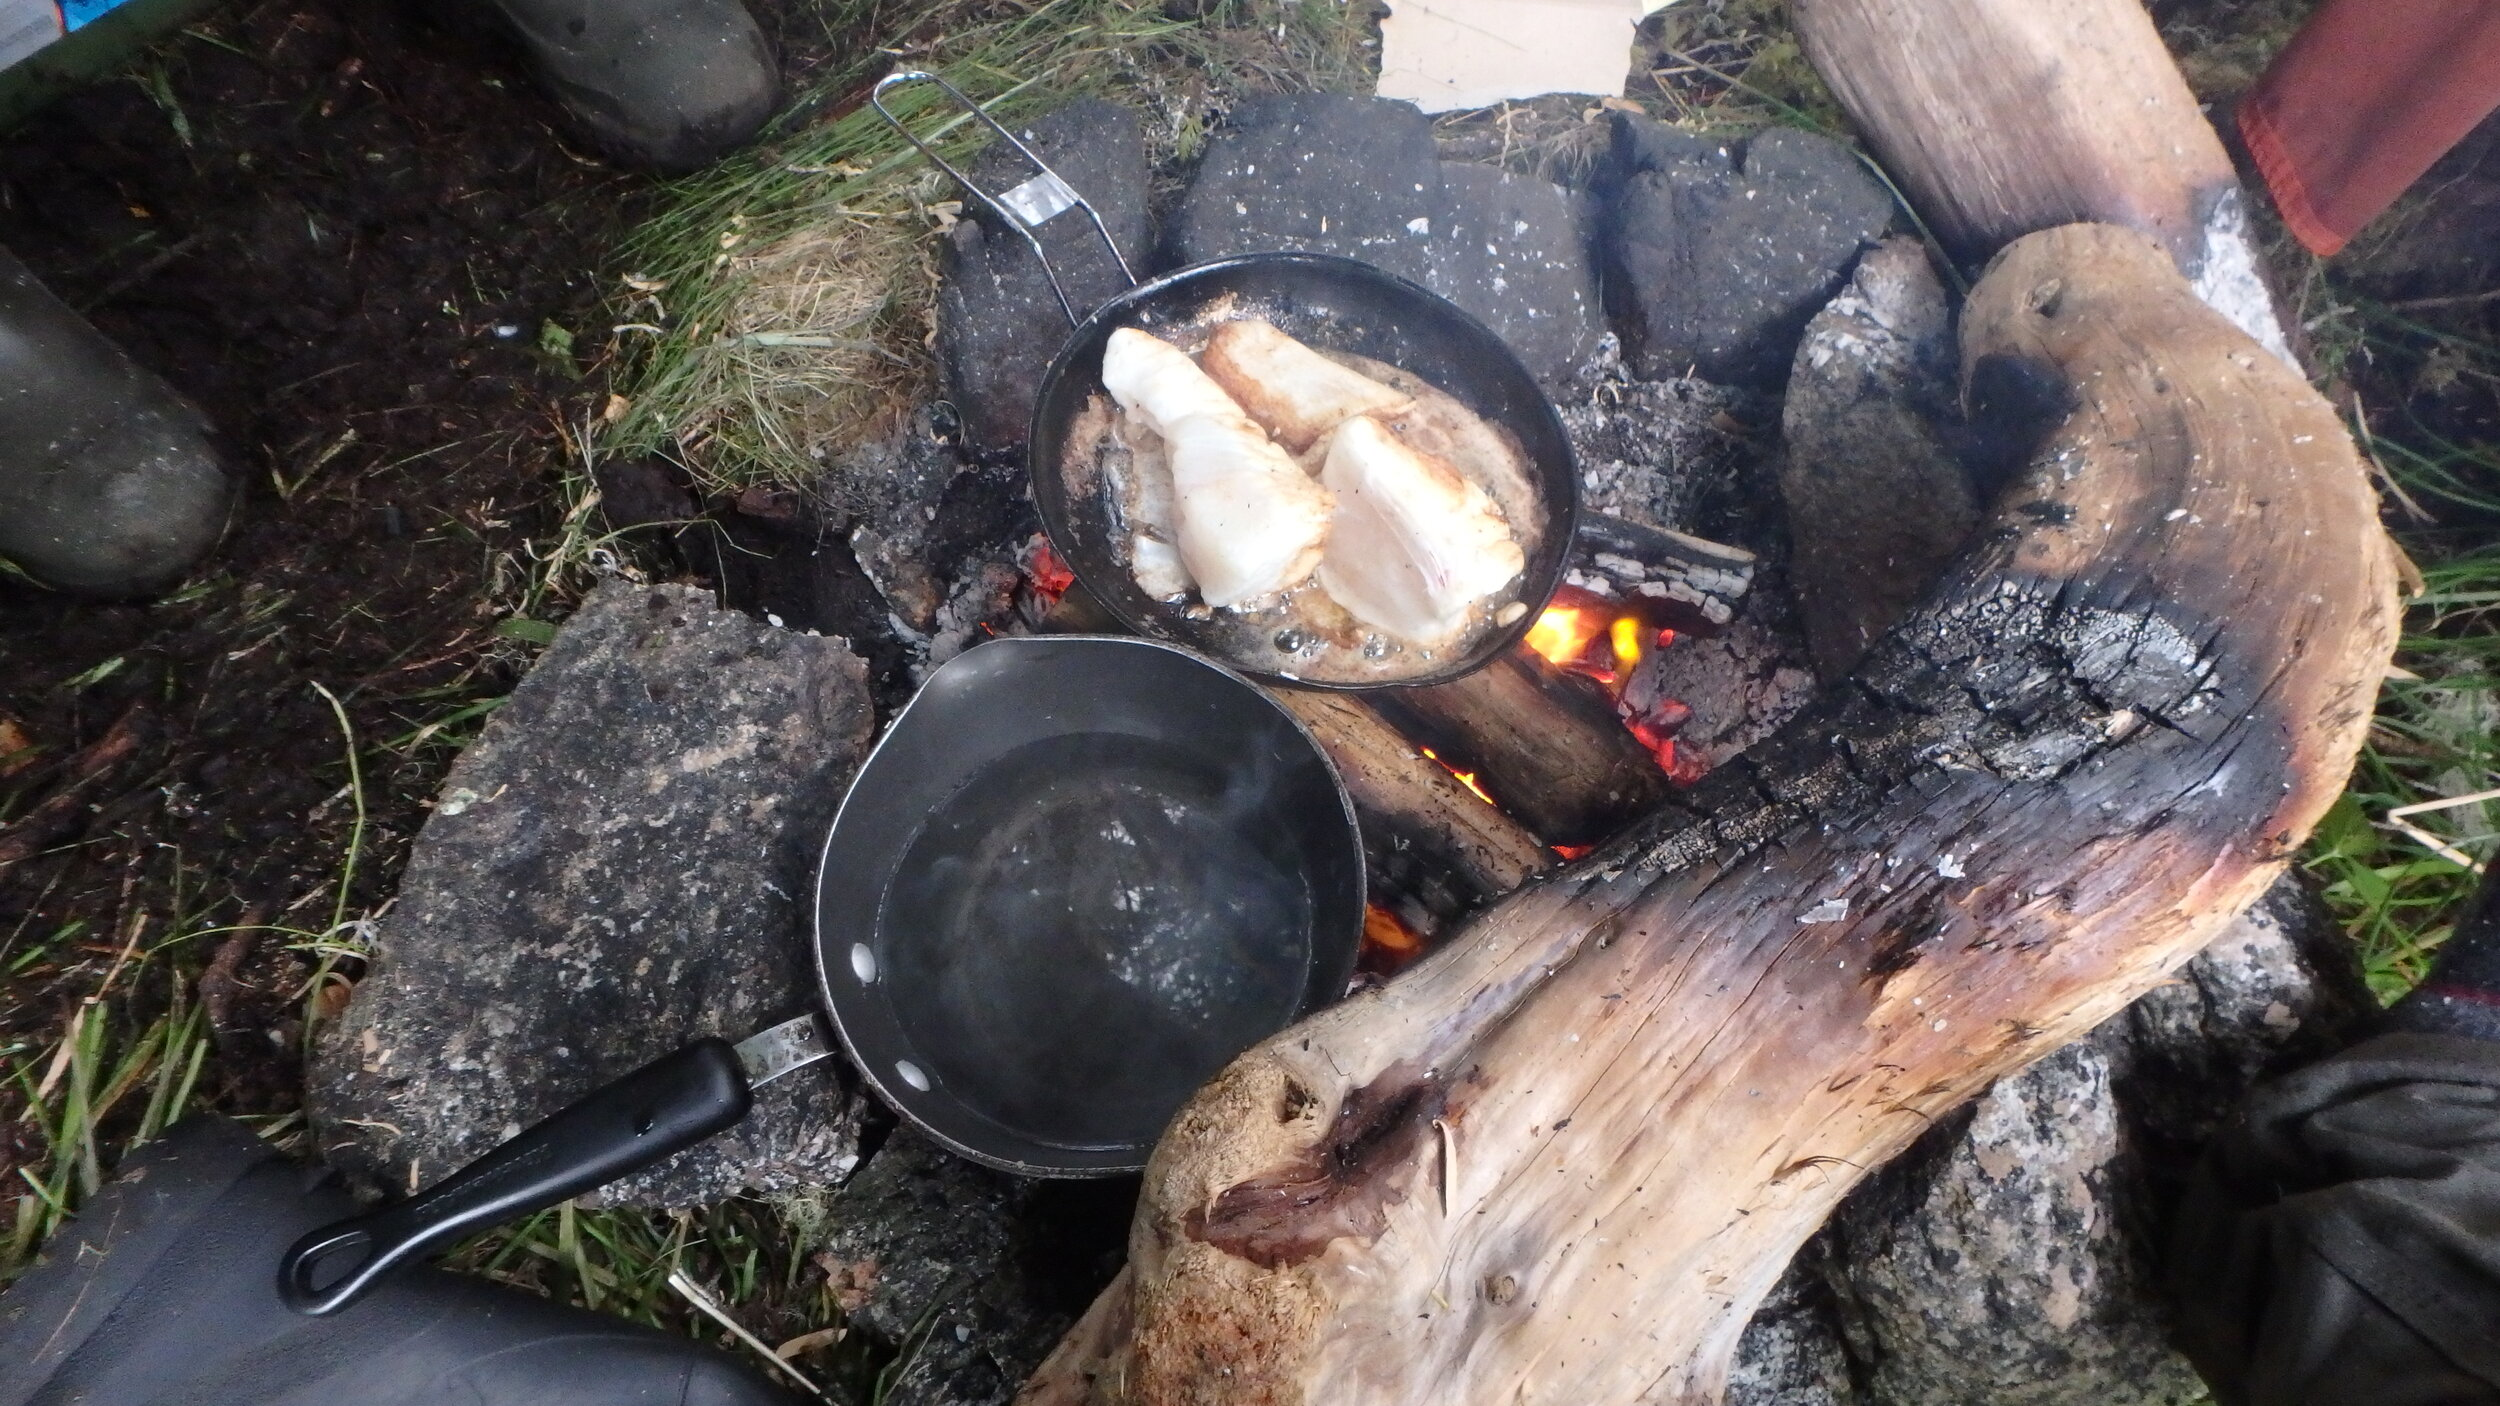 Fresh halibut fried in butter over the fire - eh!